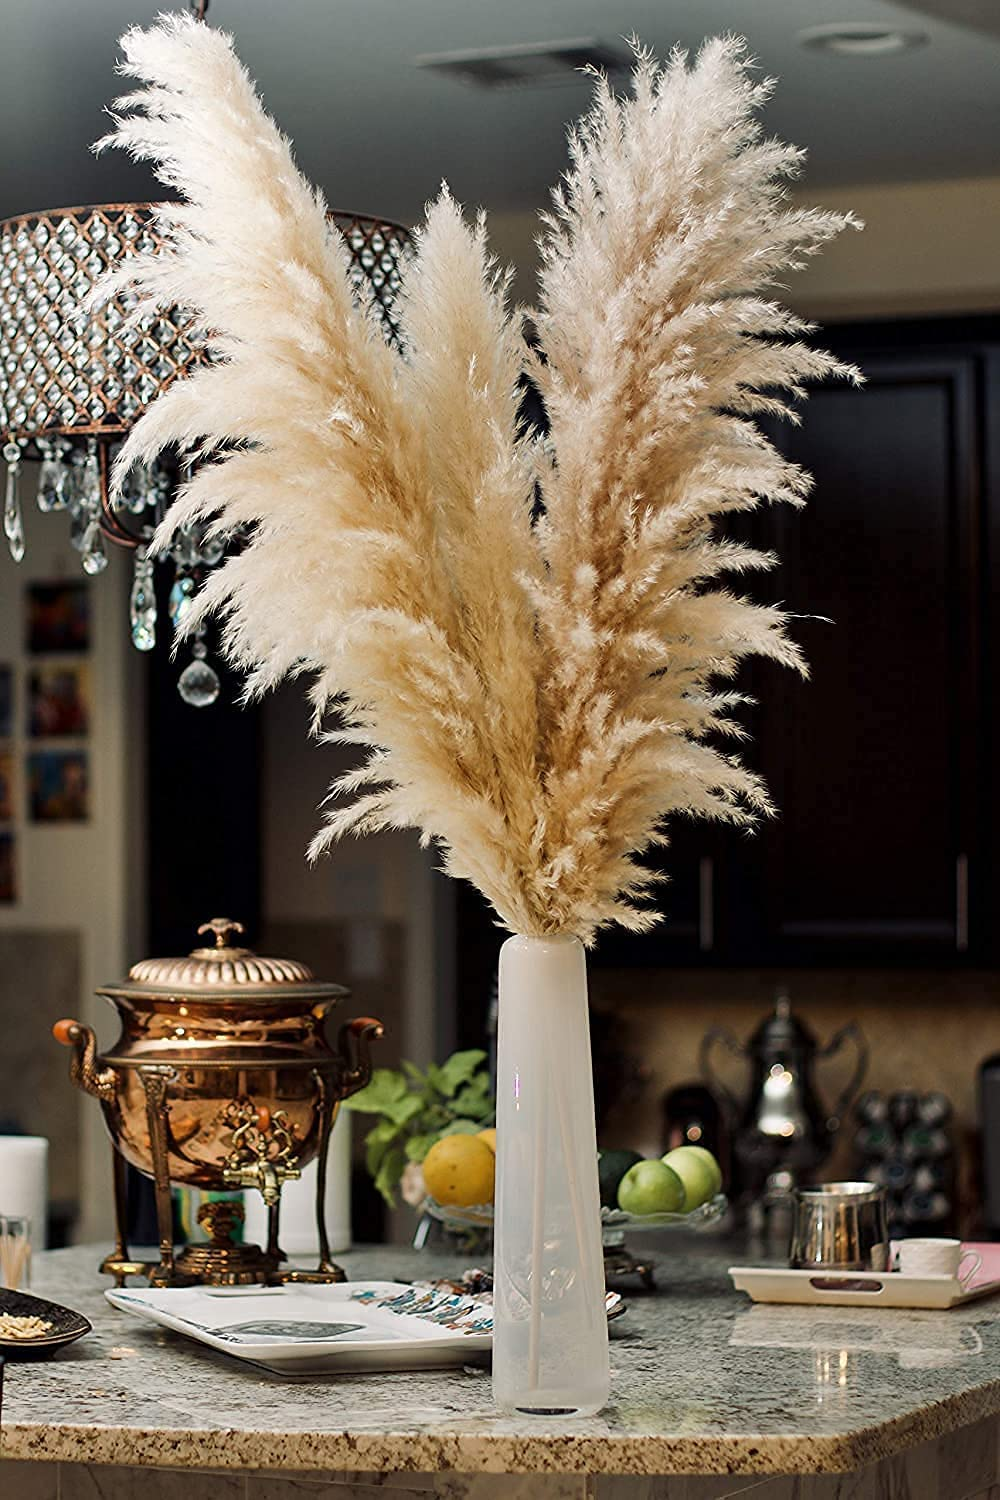 HAPPYPOP Pampas Grass 3 Fluffy stem Natural - Tall Special price for a limited time Denver Mall Dried 48